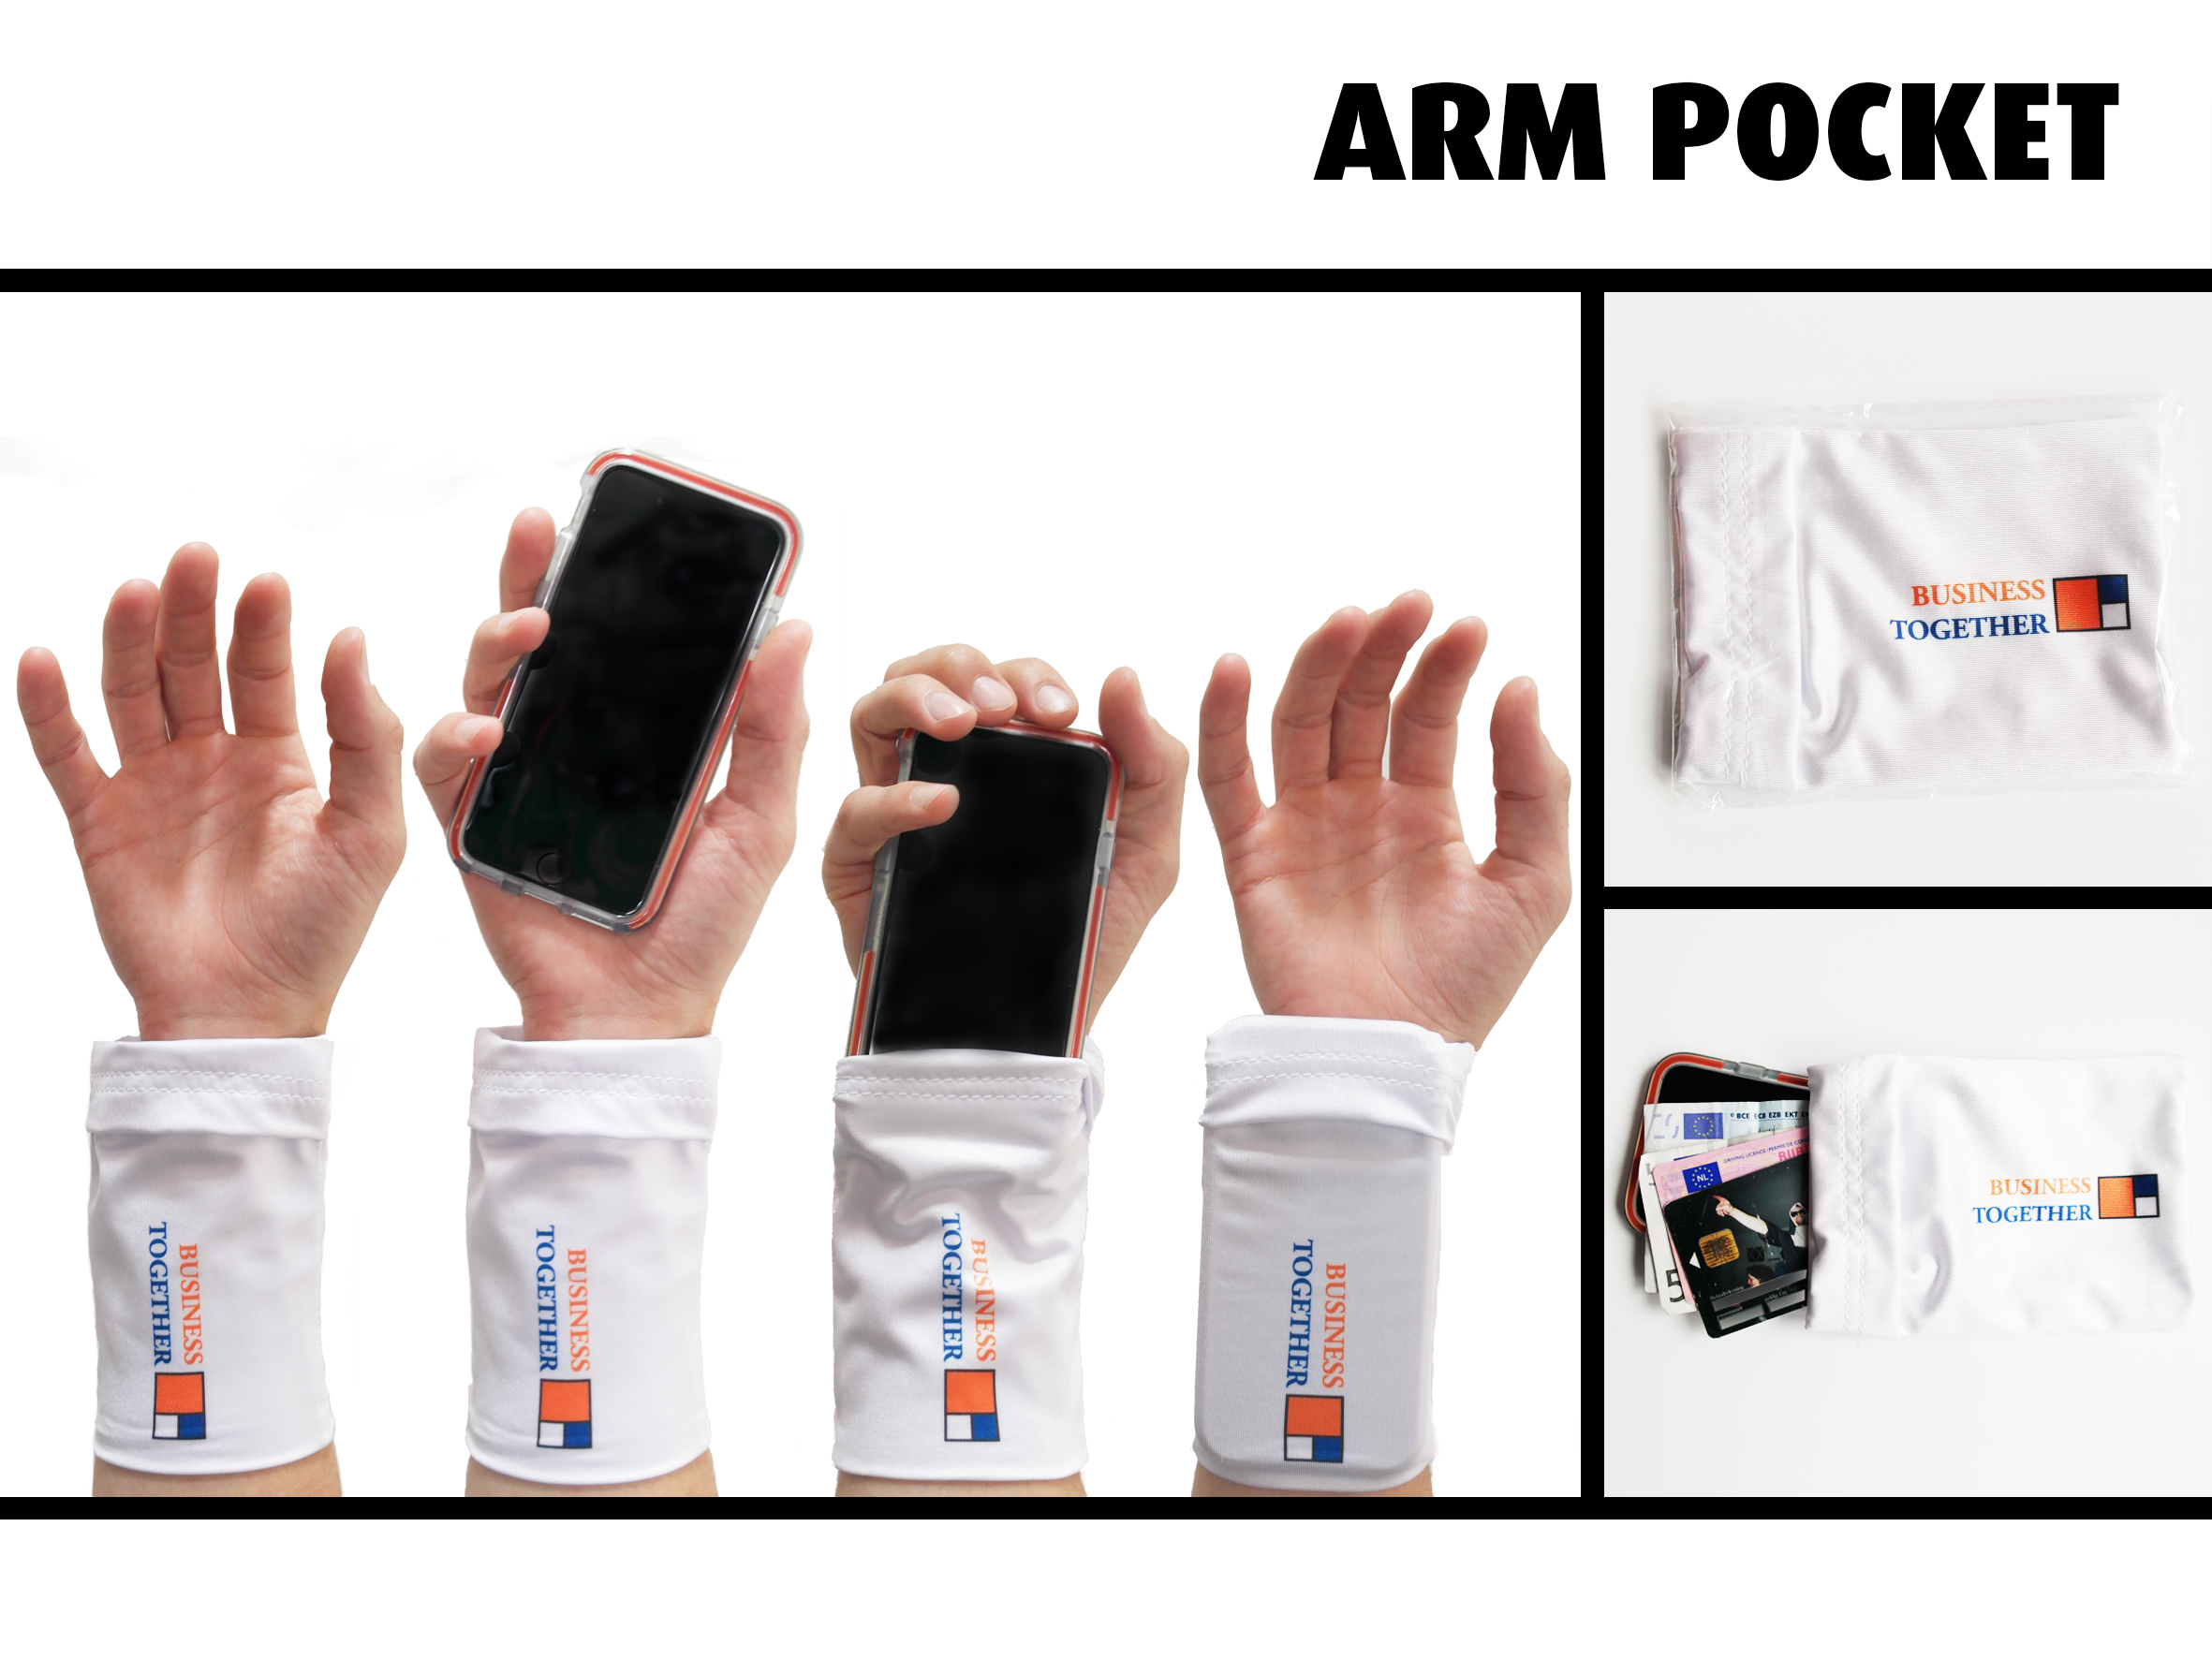 Arm Pocket